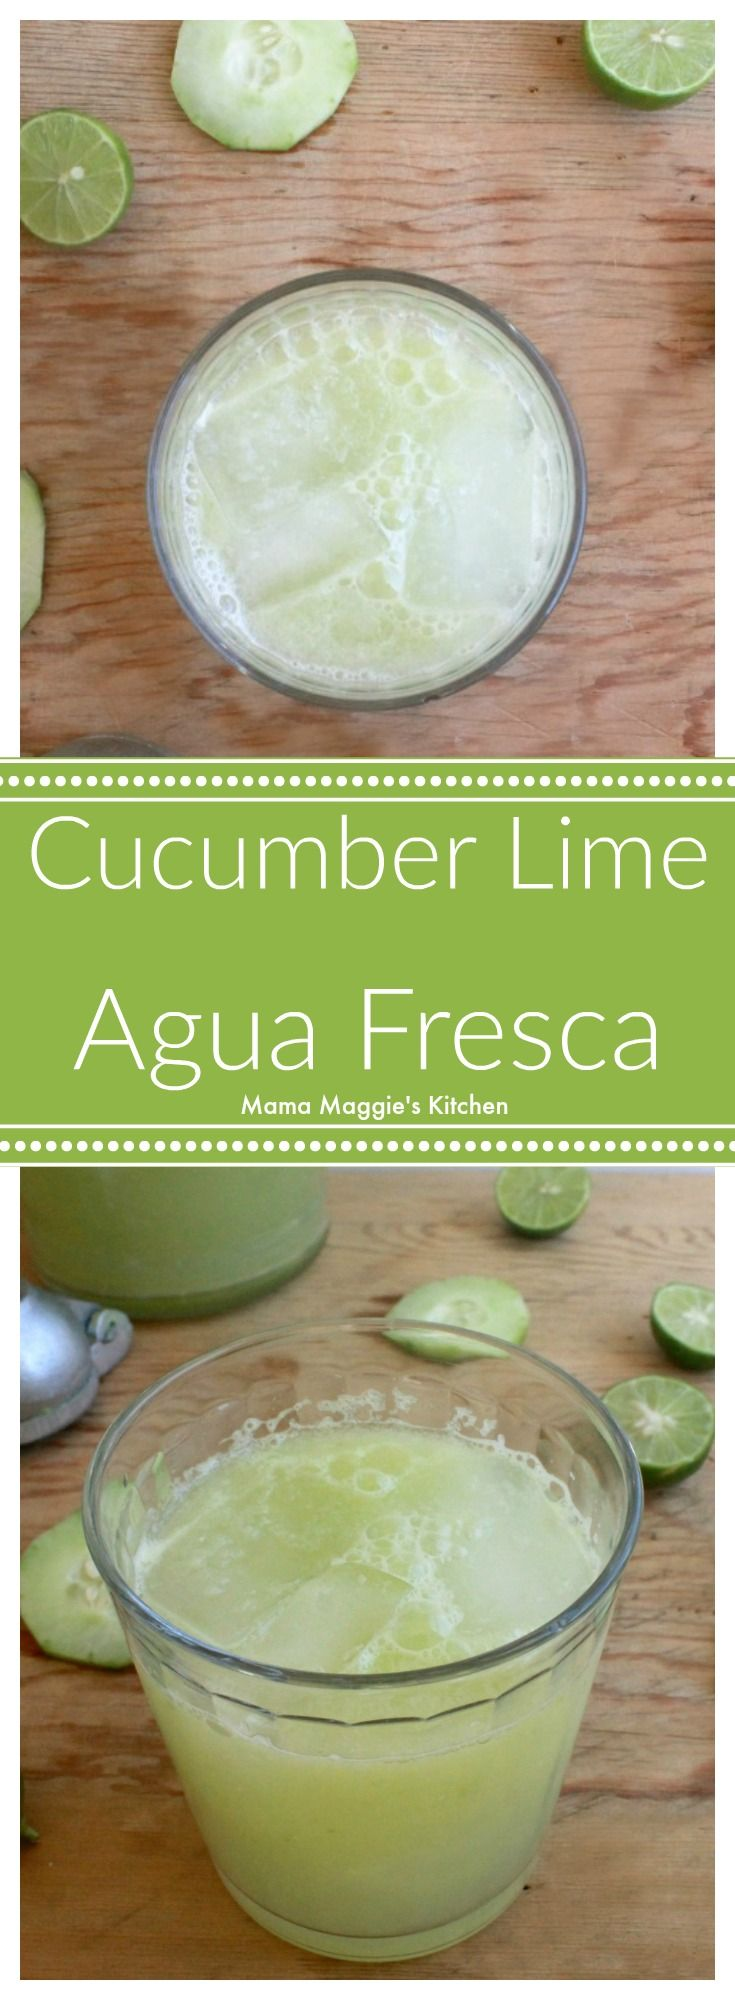 Cucumber Lime Agua Fresca is a popular warm-weather drink in Mexico. Light and refreshing and always delicious. By Mama Maggie's Kitchen